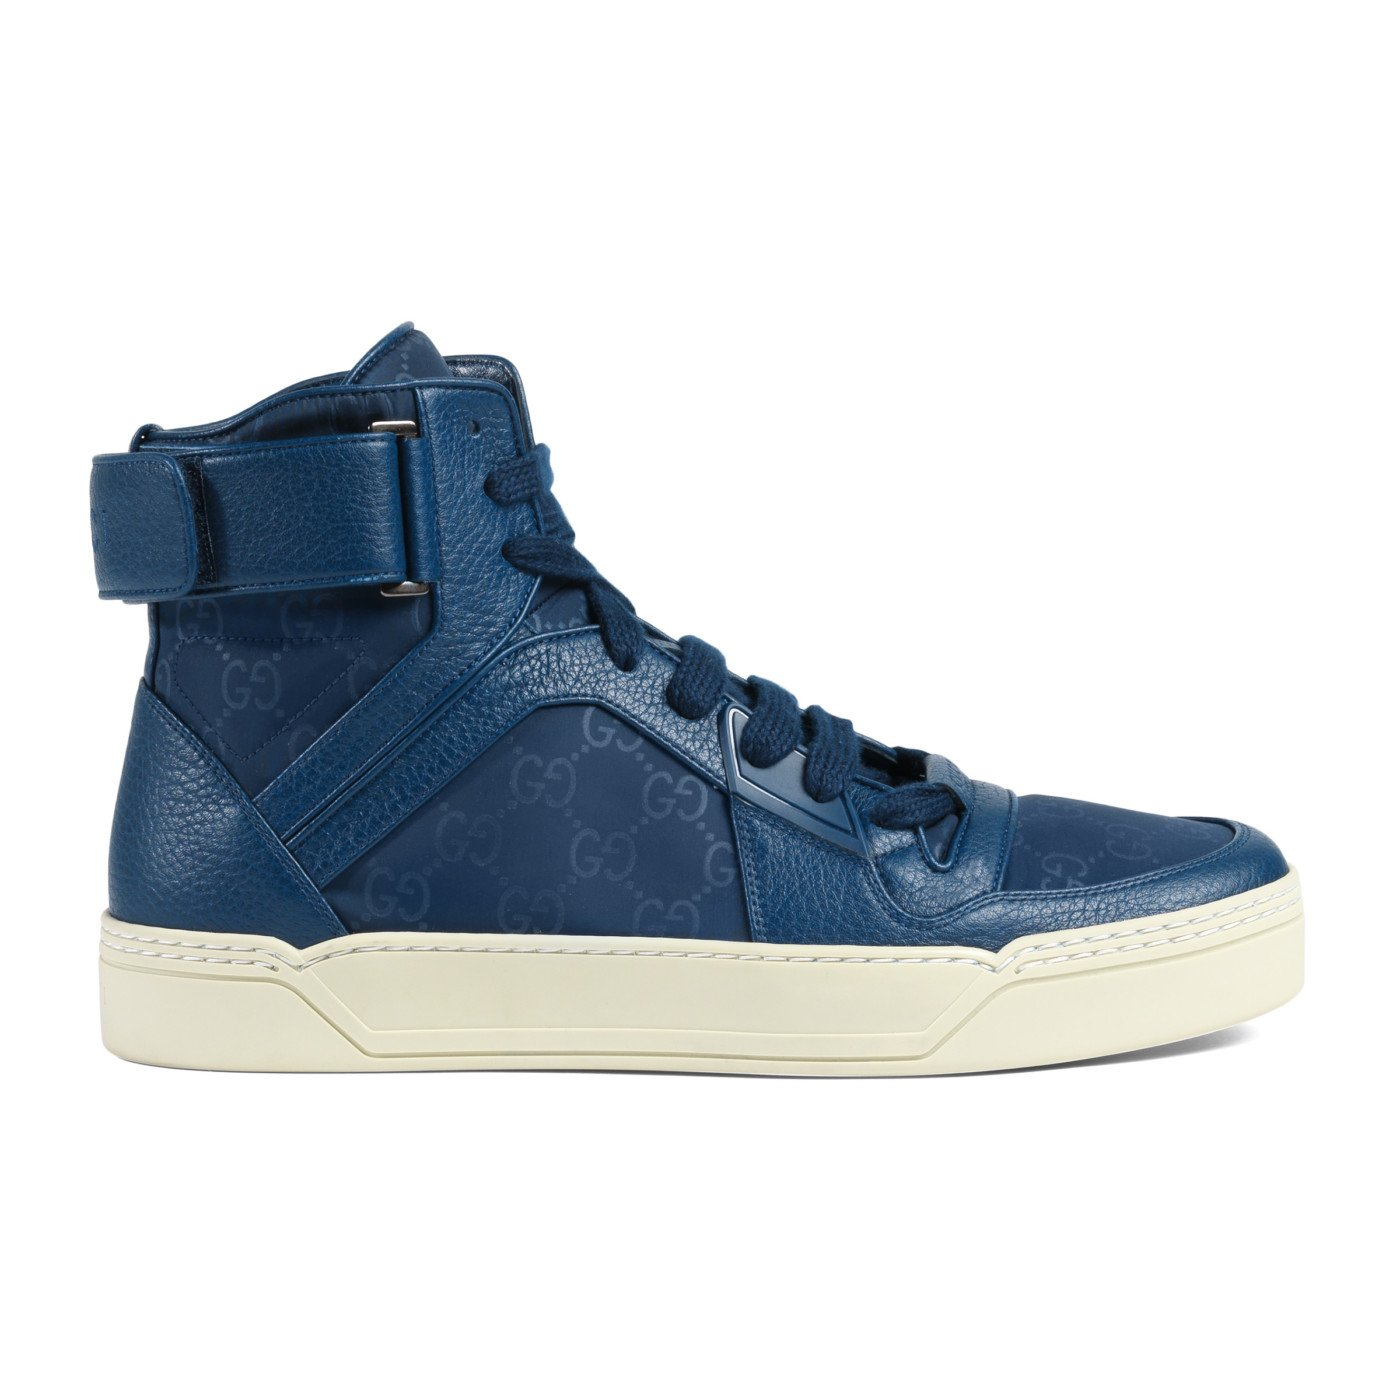 b80a8beb72e1 Top2  Gucci Men s Blue Nylon Leather GG Guccissima High Top Sneakers Shoes